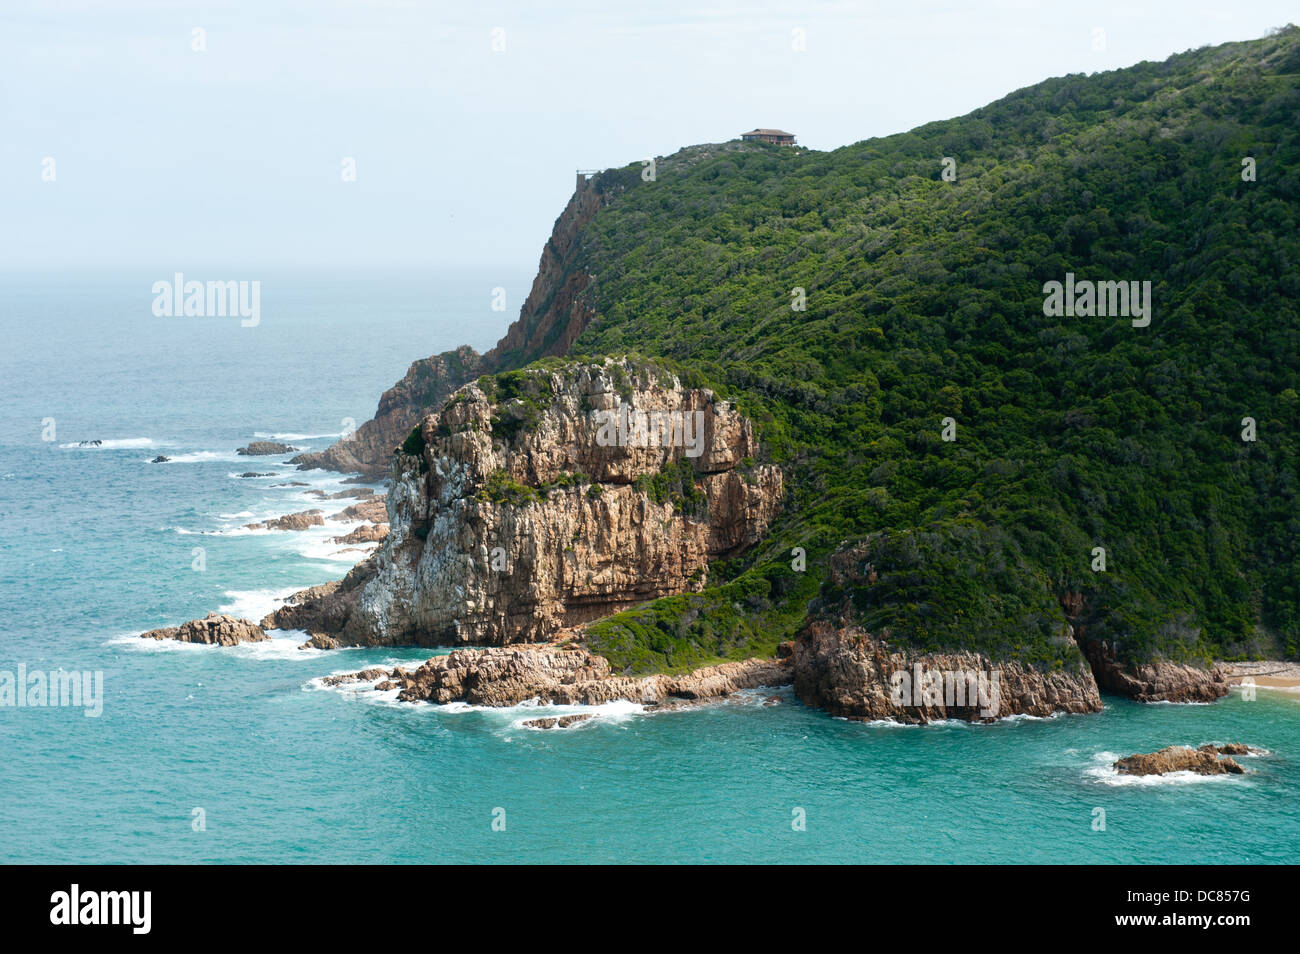 View of the Western Head and Knysna lagoon from Eastern Head Viewpoint, Knysna, Western Cape, South Africa - Stock Image